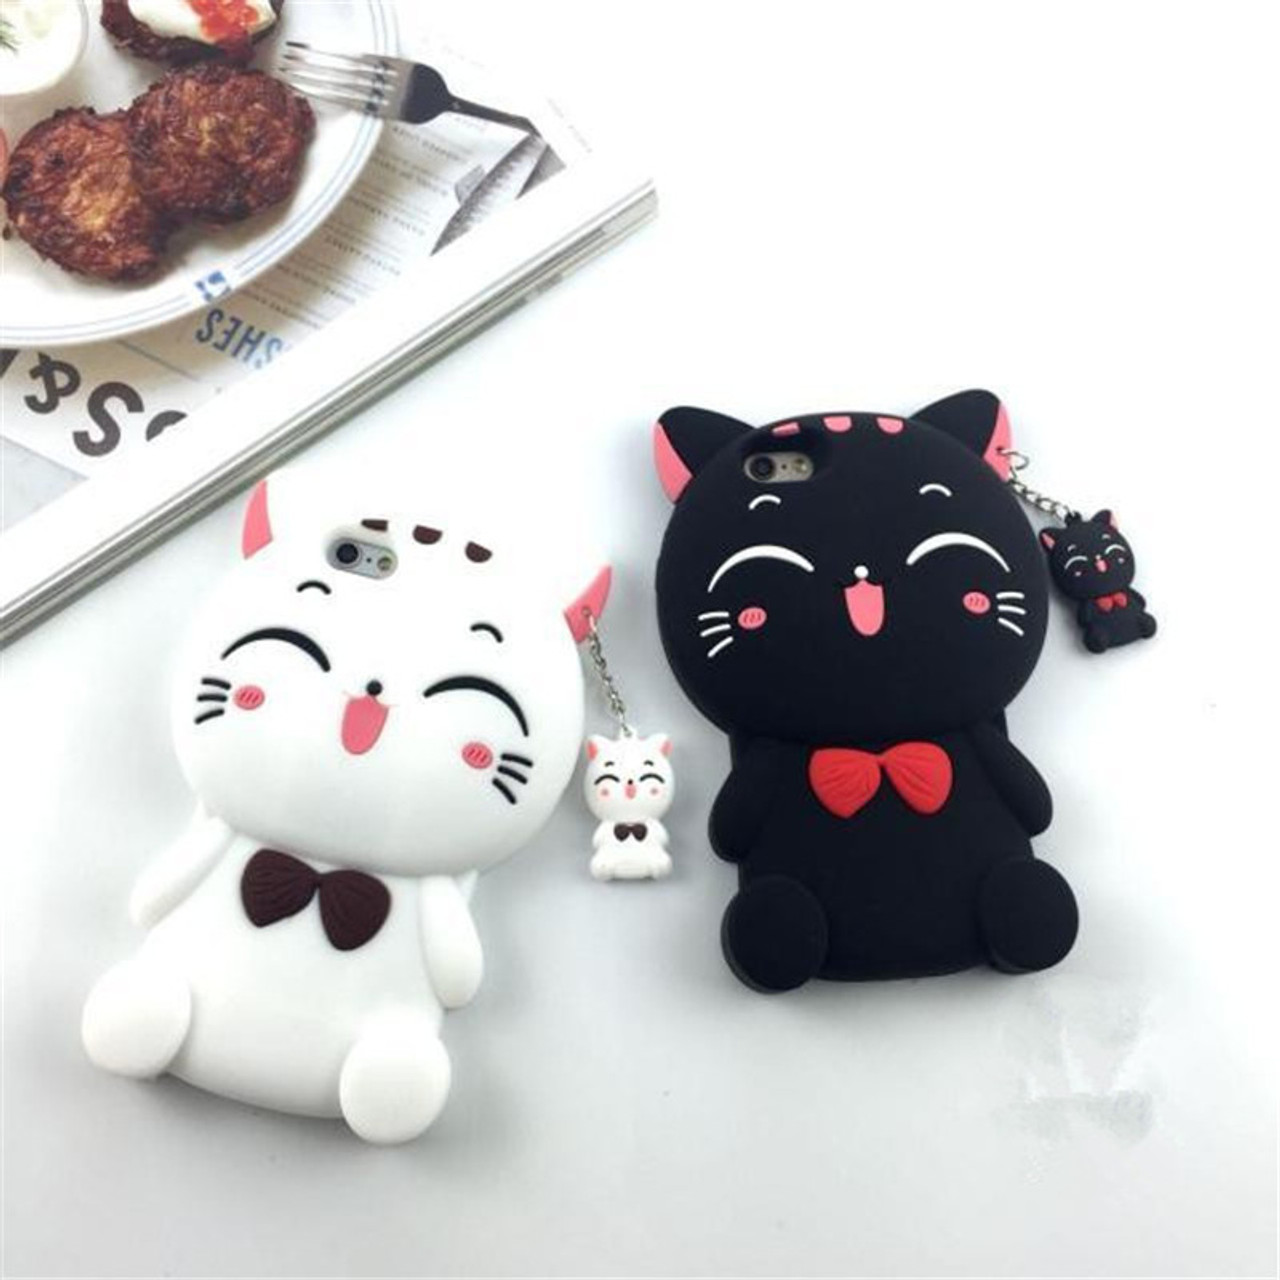 bd452400d70250 ... 3D Luxury Cute Cartoon Lucky Cat Soft Silicone Mobile Phone Back Case  Cover Skin Shell For ...